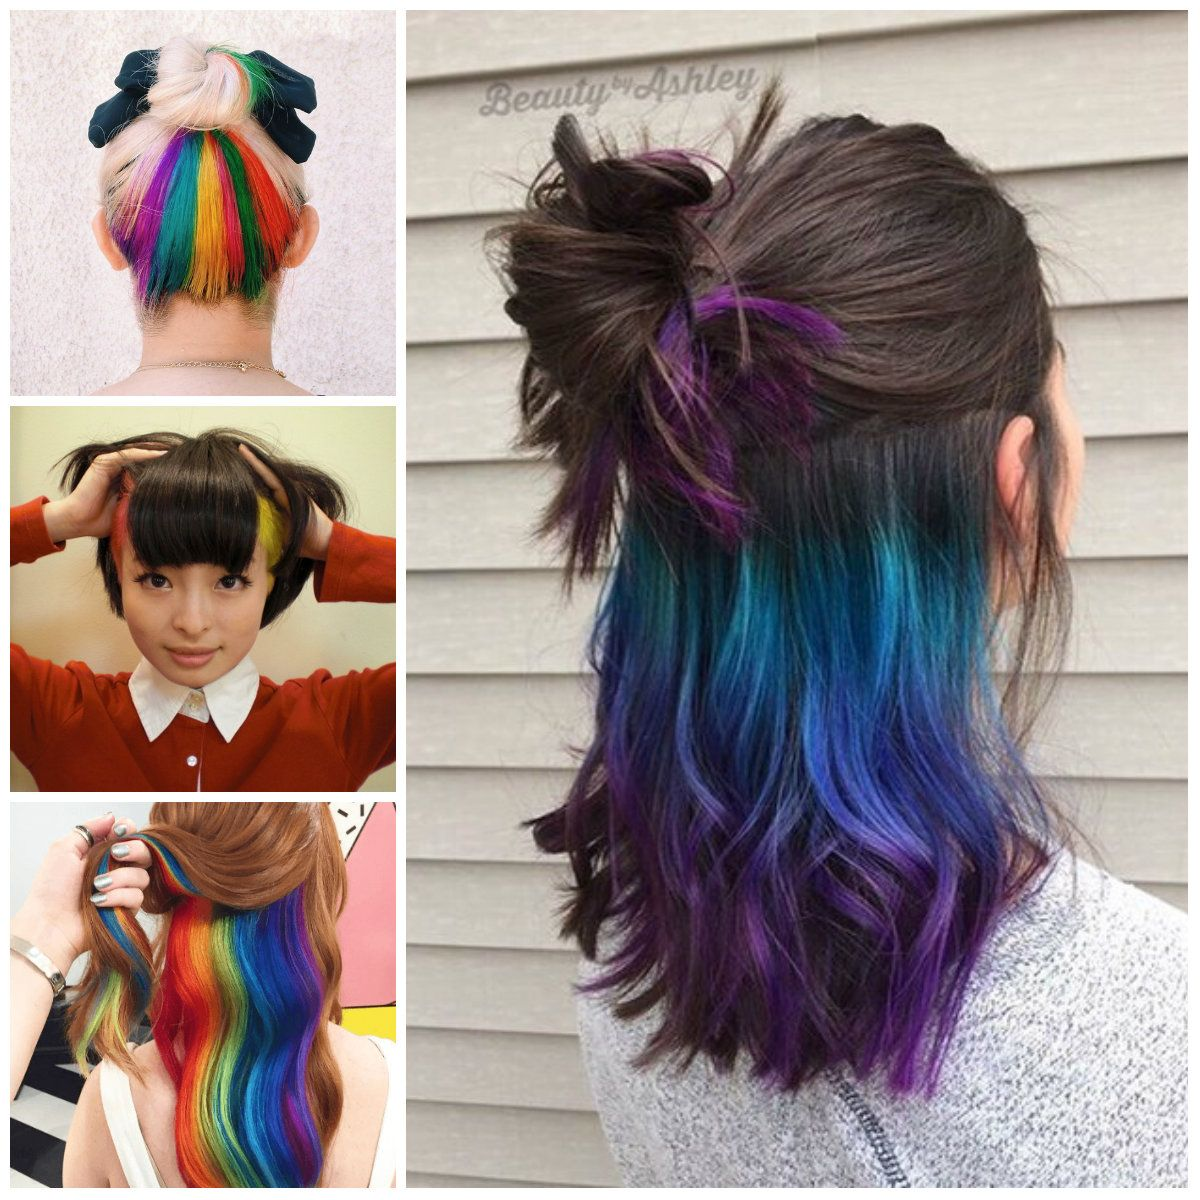 Images about hair colors and styles on pinterest - Bold Hidden Hair Color Ideas For 2017